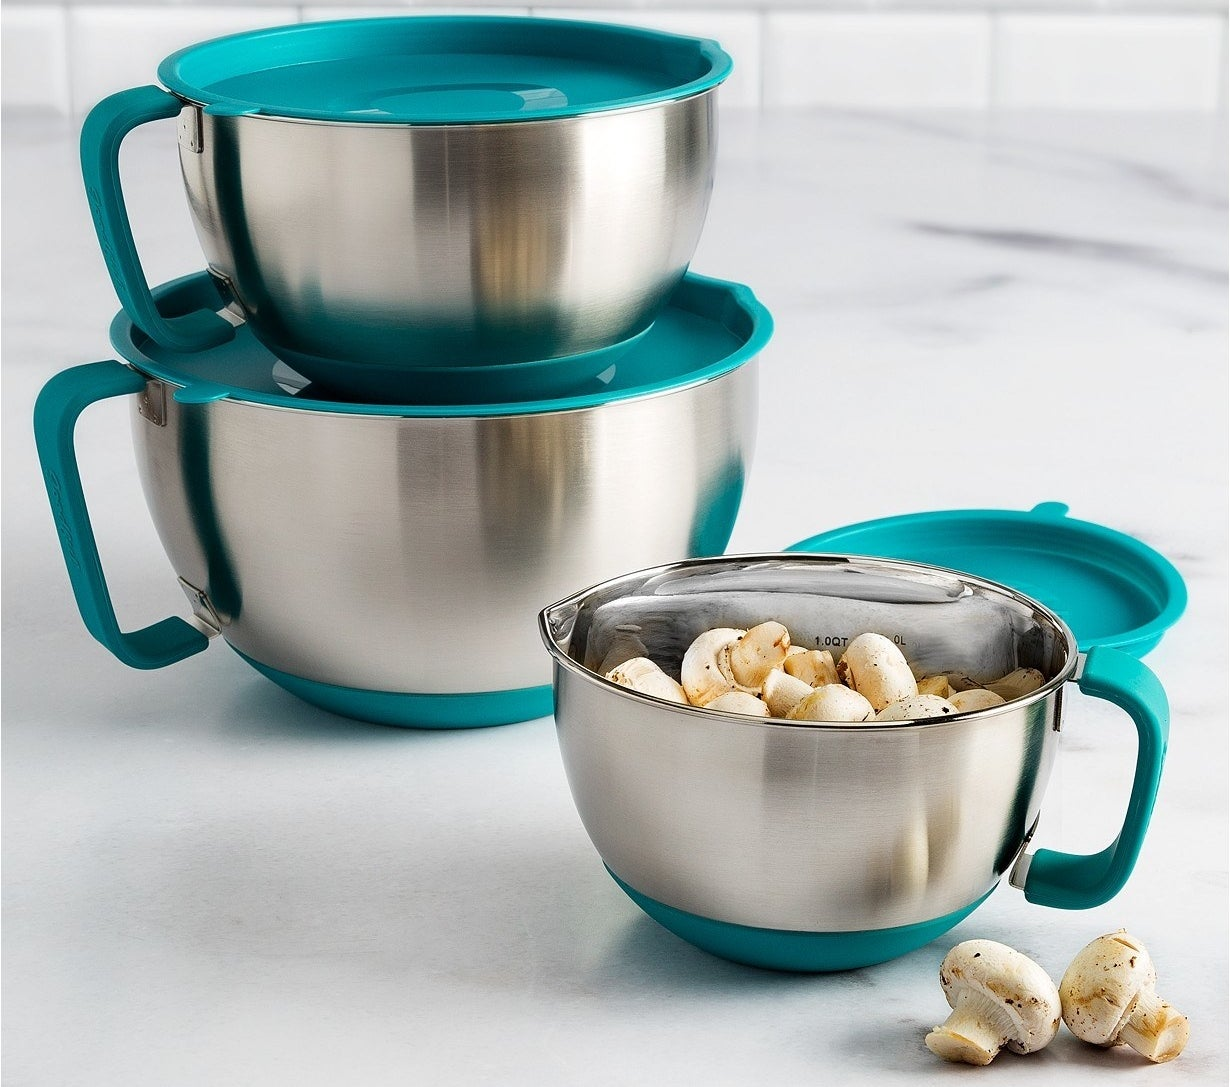 It has a lid so you can pop it in the fridge for later (great when you're making cookie dough and need the dough slightly chilled before scooping to make it less sticky), and a pour spout so you can neatly fill sheet pans and muffin tins with ease.Get it from BuzzFeed's Goodful line, exclusively at Macy's for $49.99 (originally $71.99)